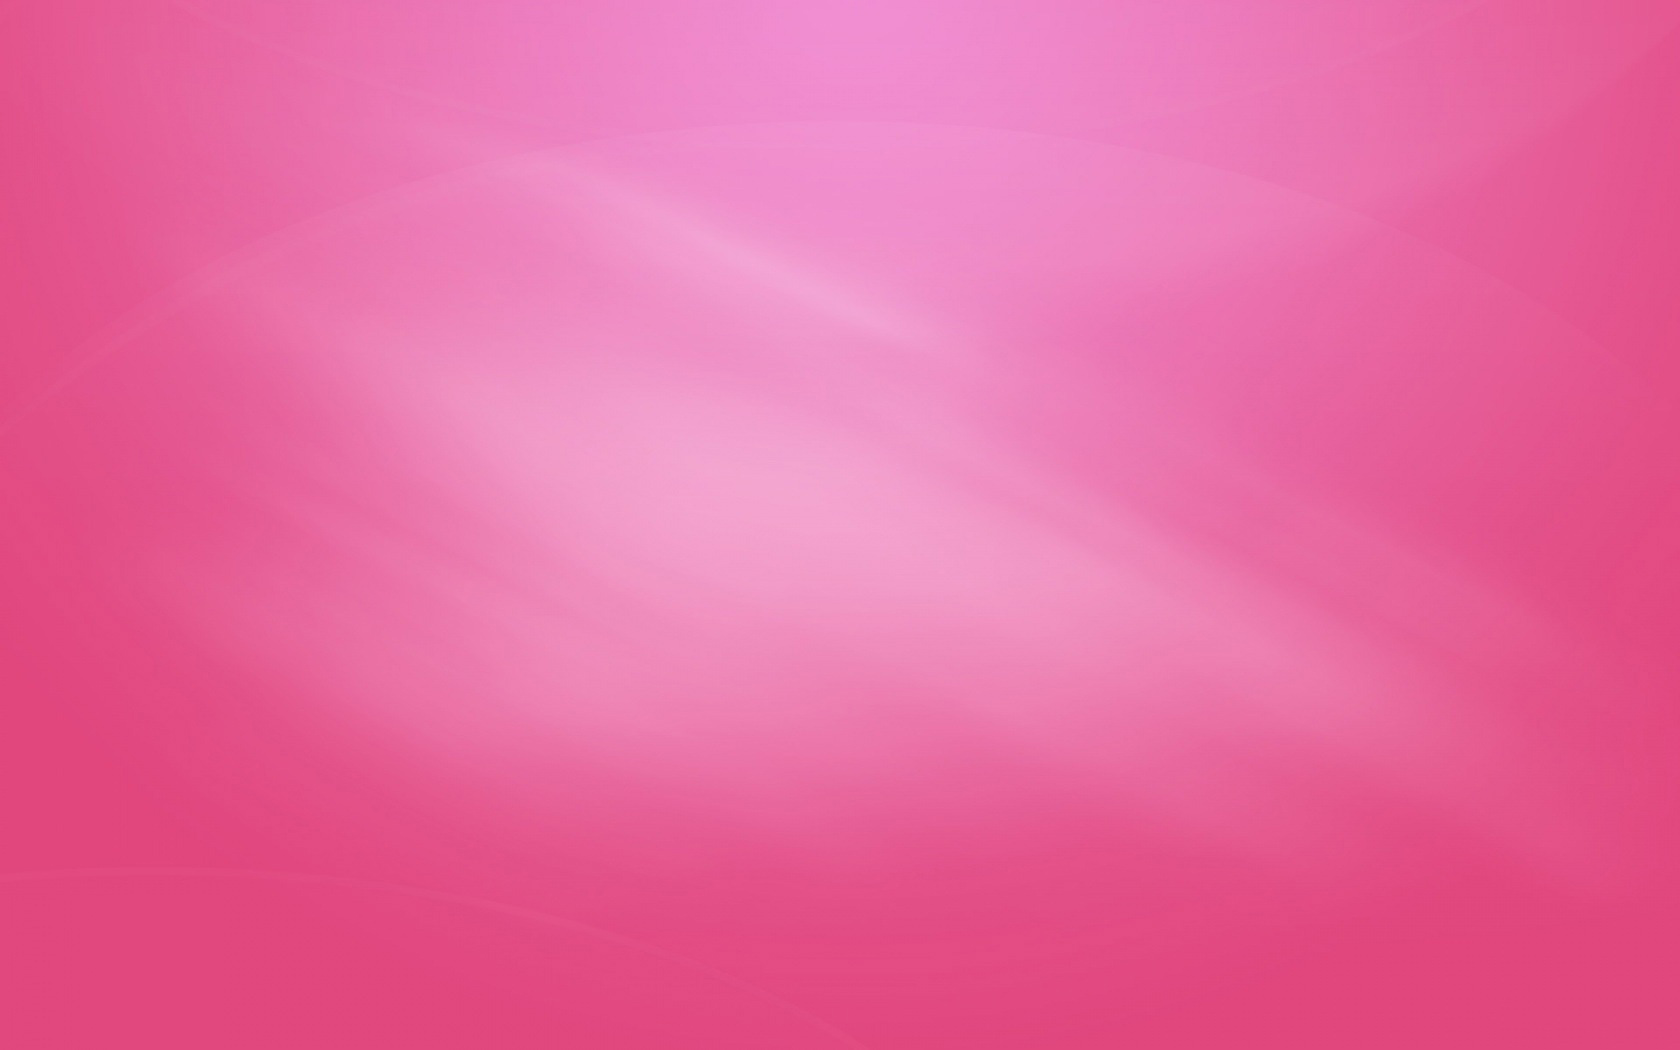 Windows 7 images Pink computer background HD wallpaper and 1680x1050